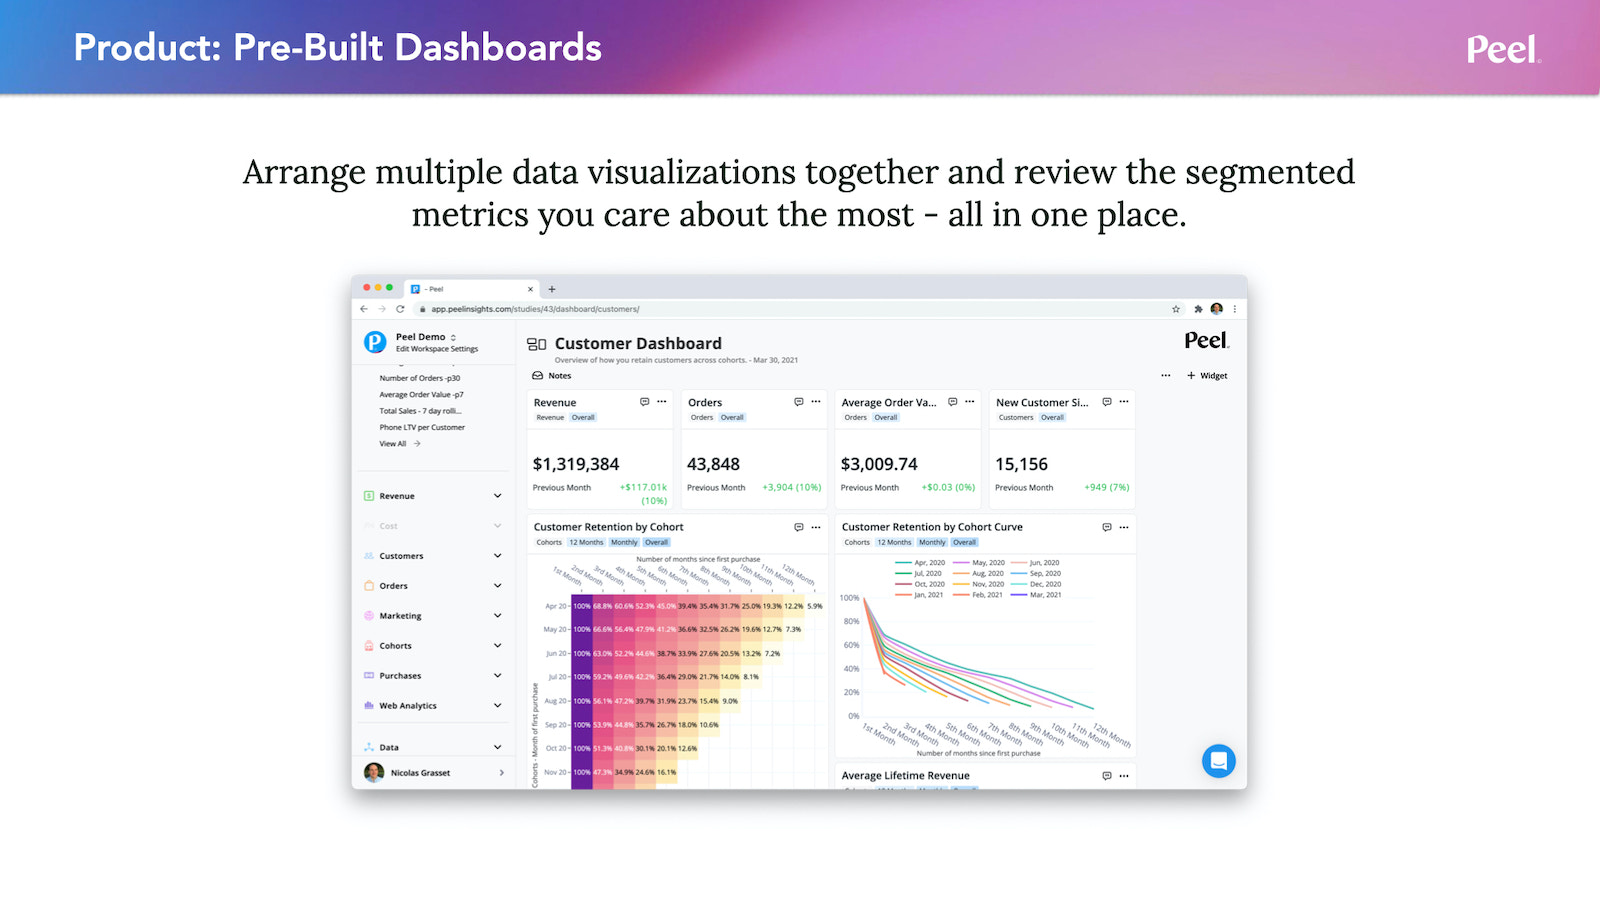 Pre-Built Dashboards